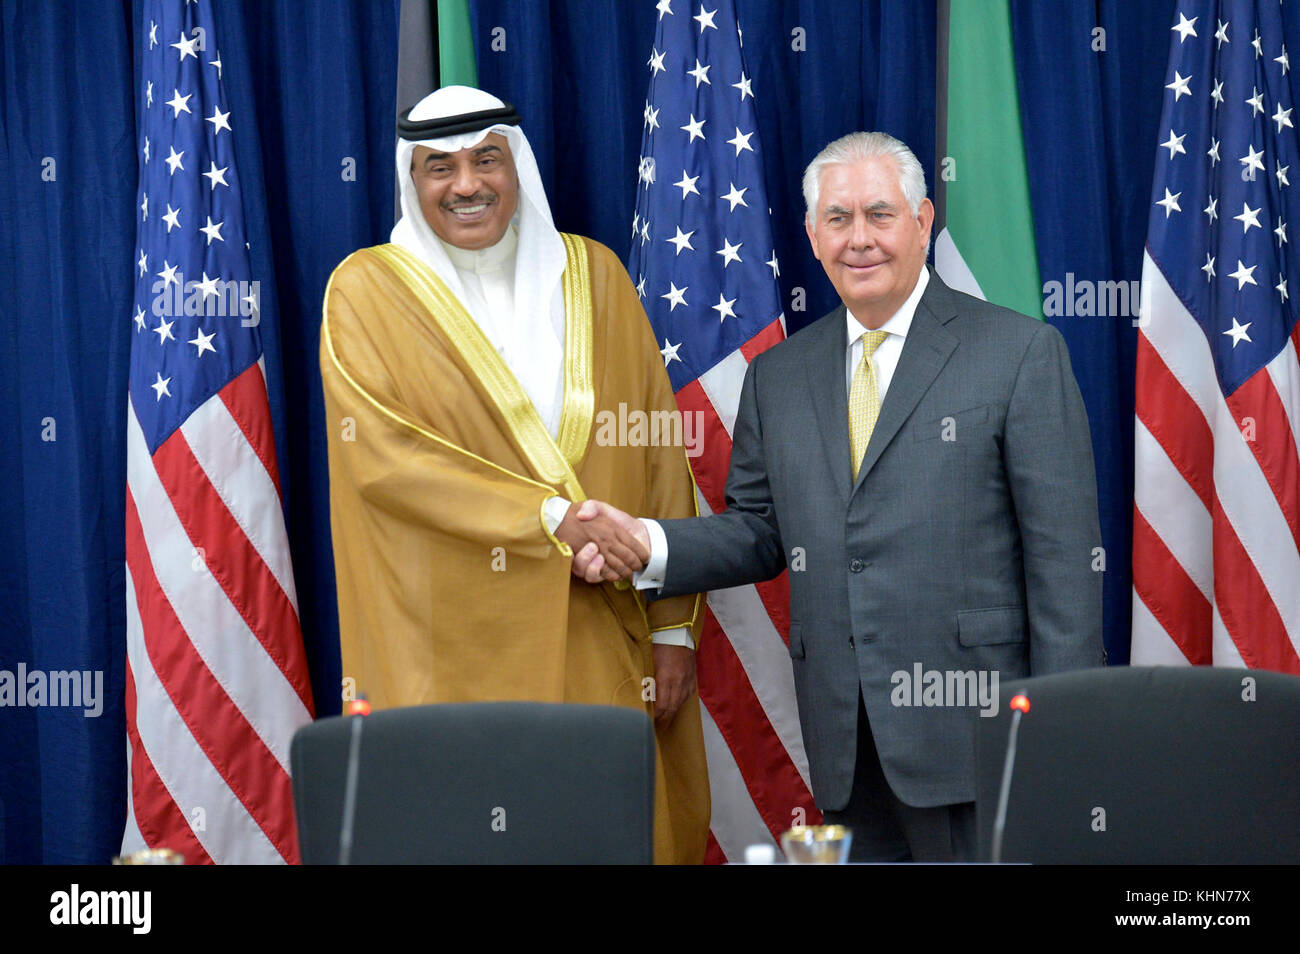 U.S. Secretary of State Rex Tillerson shakes hands with Kuwaiti Foreign Minister Sheikh Sabah Al-Khaled Al-Hamad - Stock Image